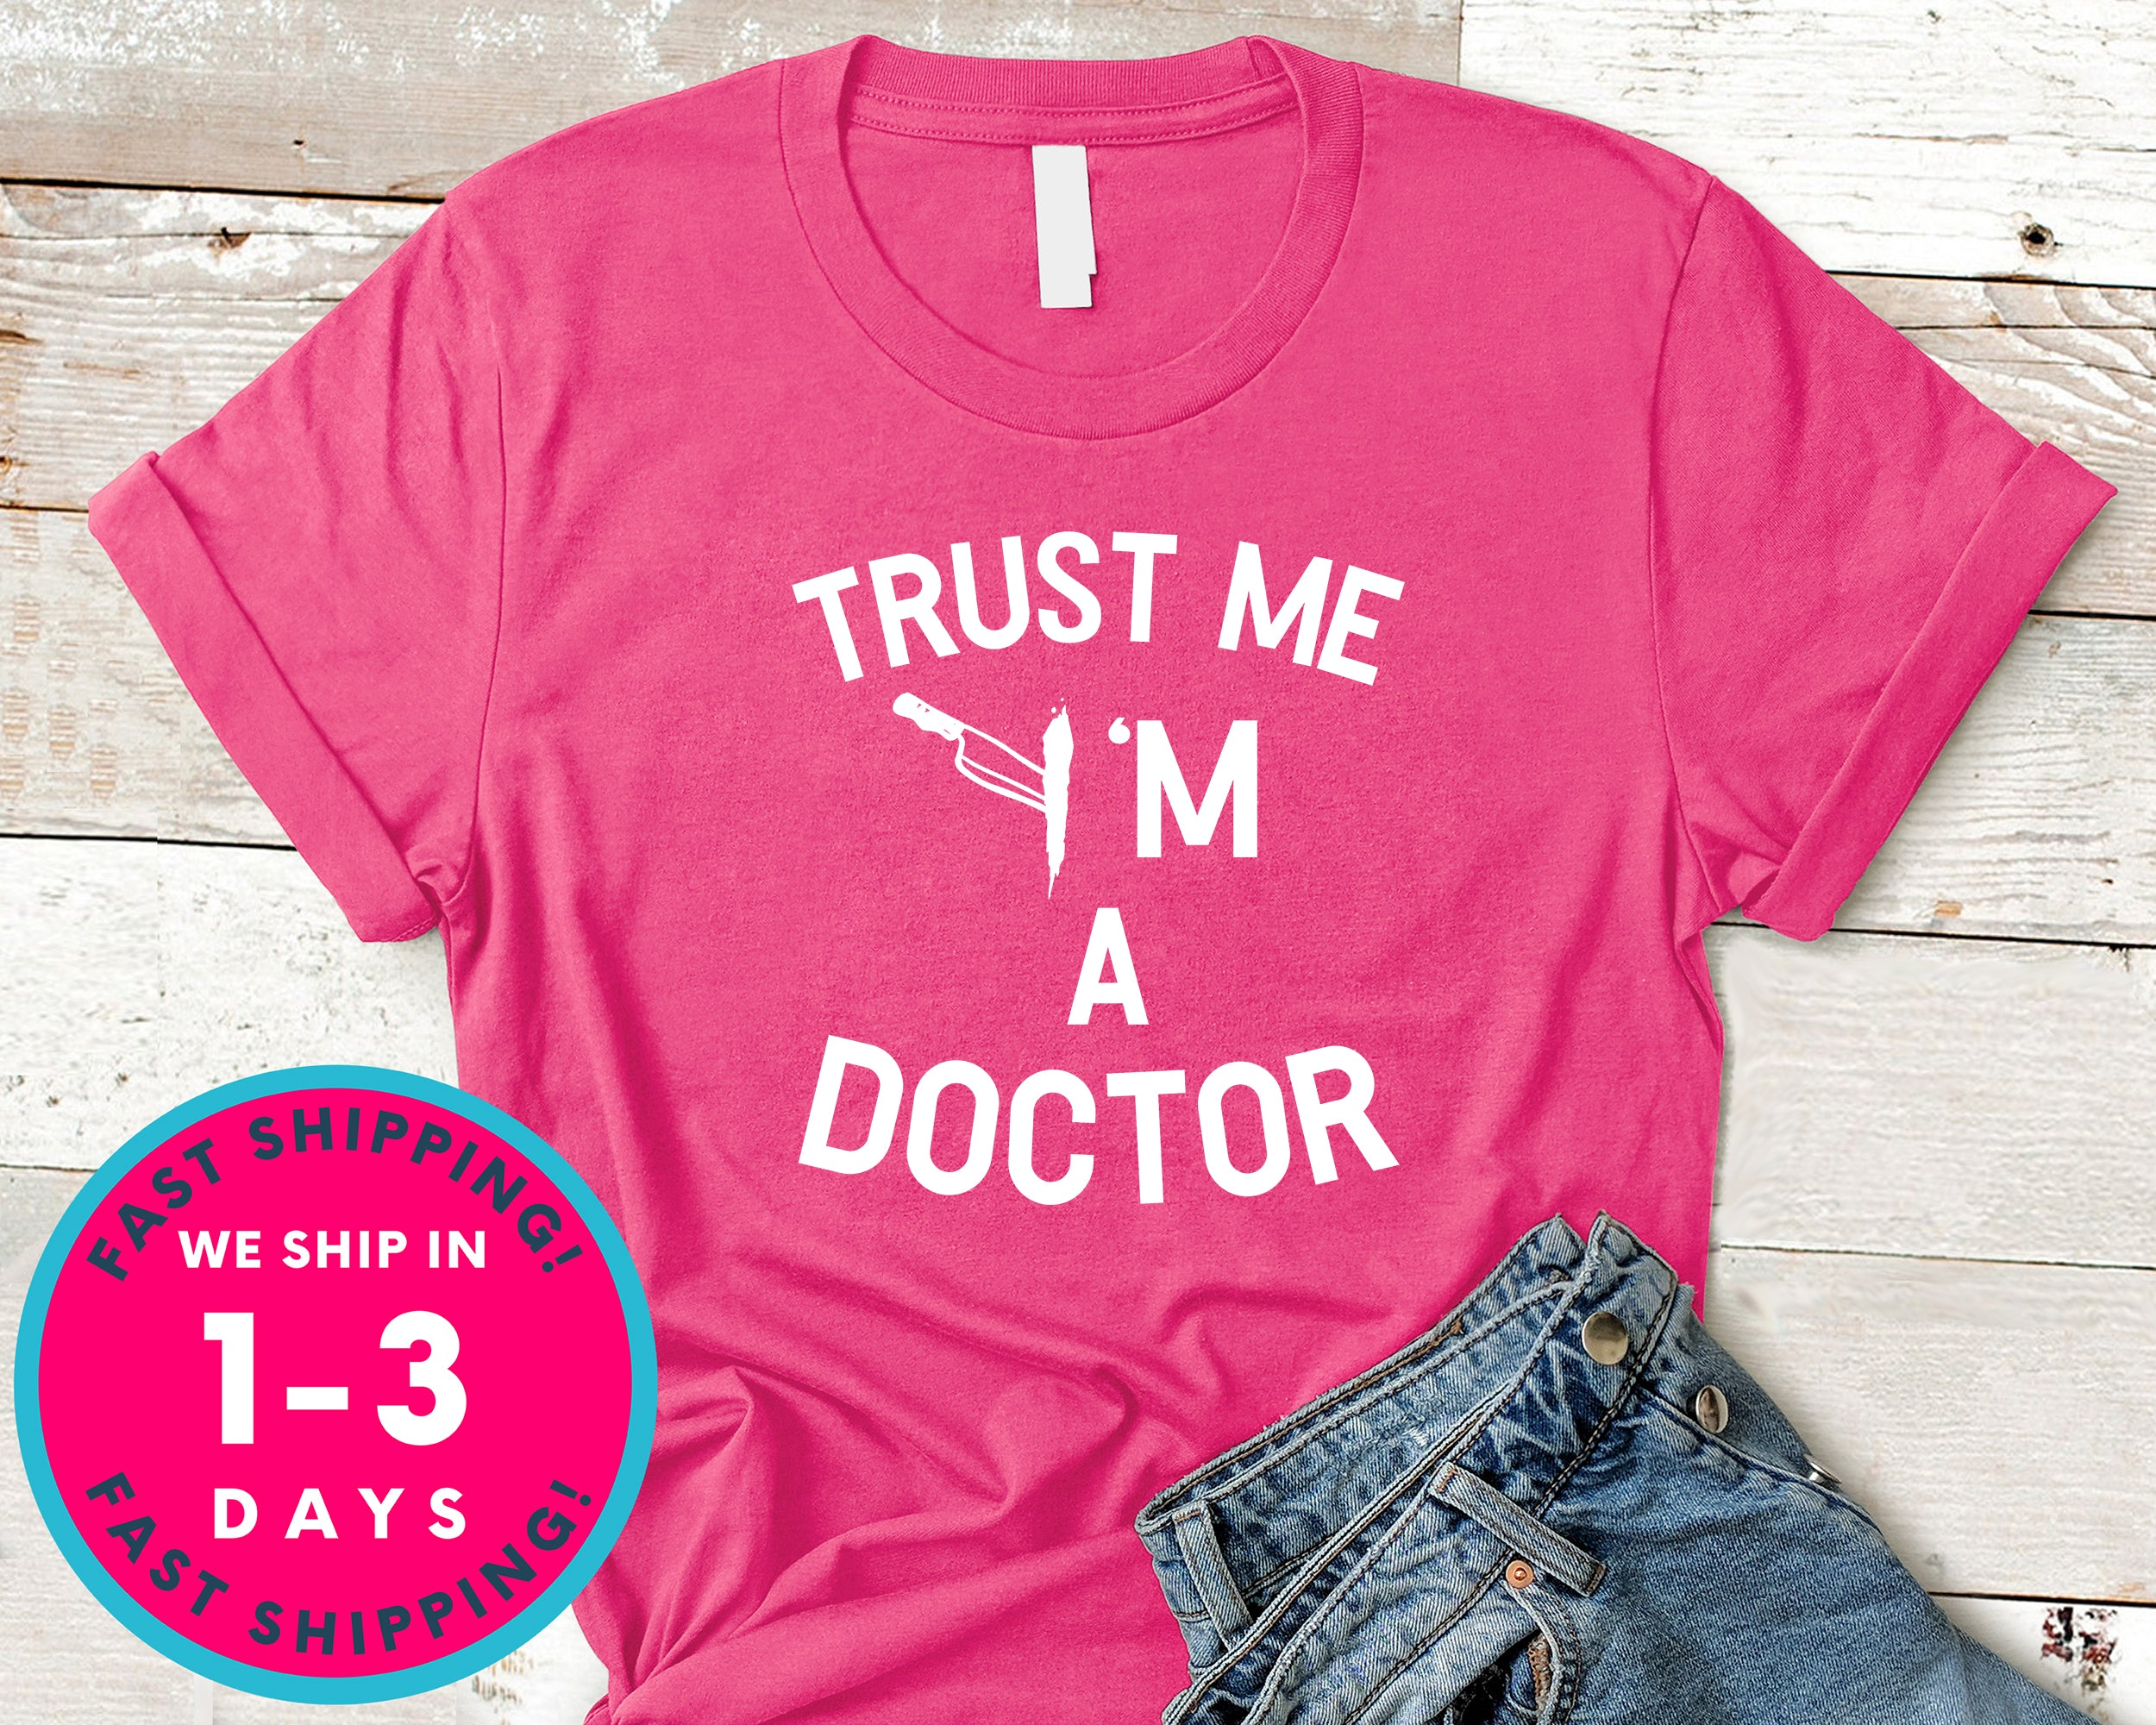 Trust Me I'm A Doctor Funny T-Shirt - Halloween Horror Scary Shirt